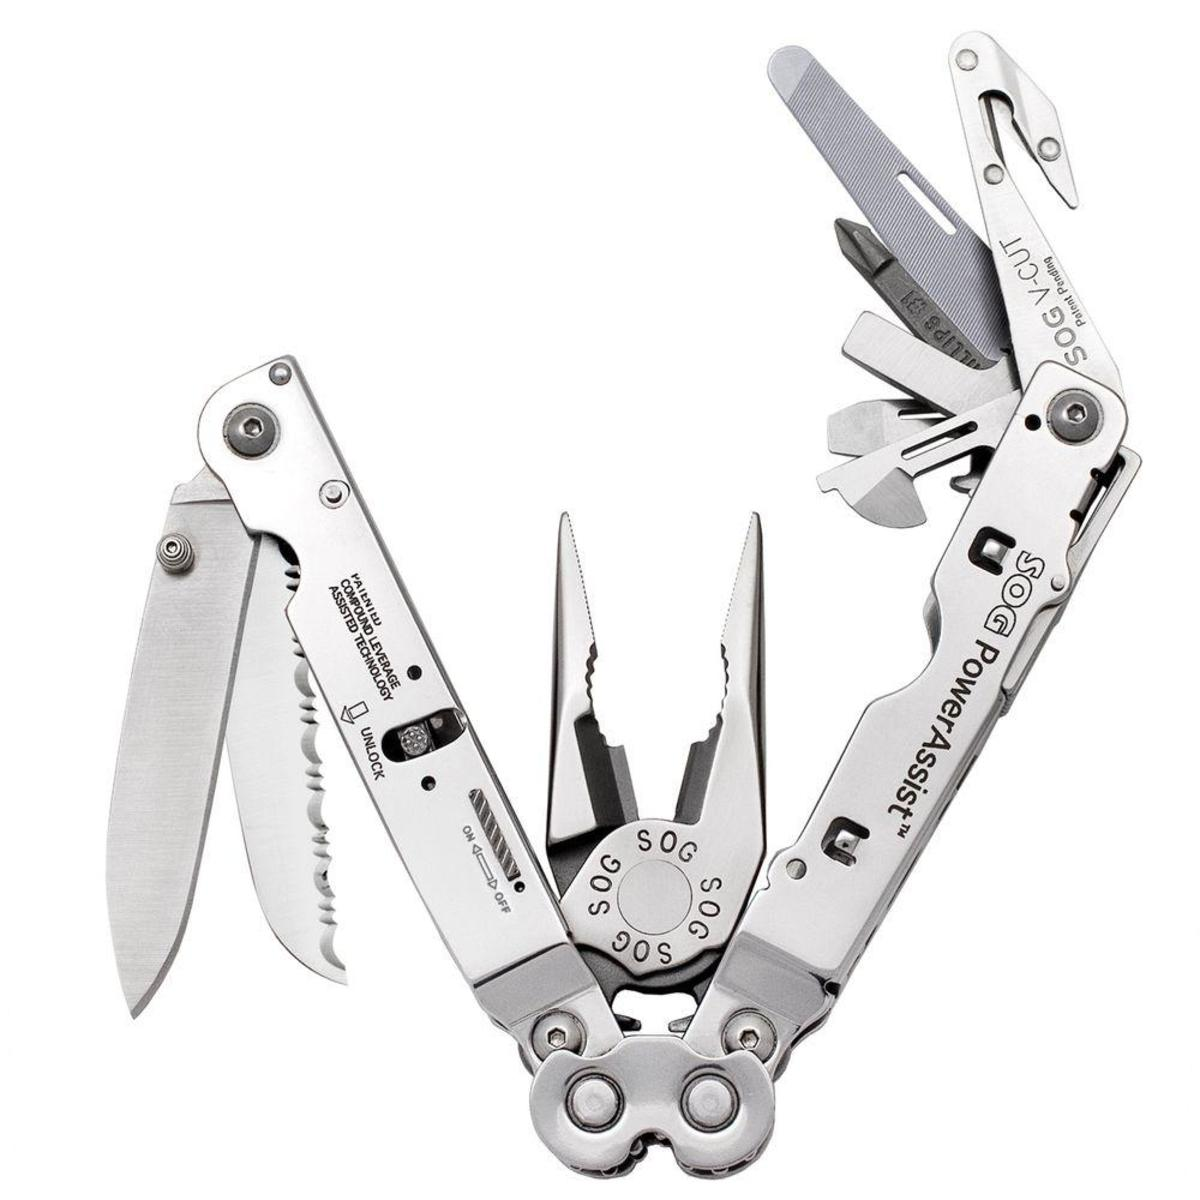 SOG PowerAssist Multi-Tool: Southpaw Approved